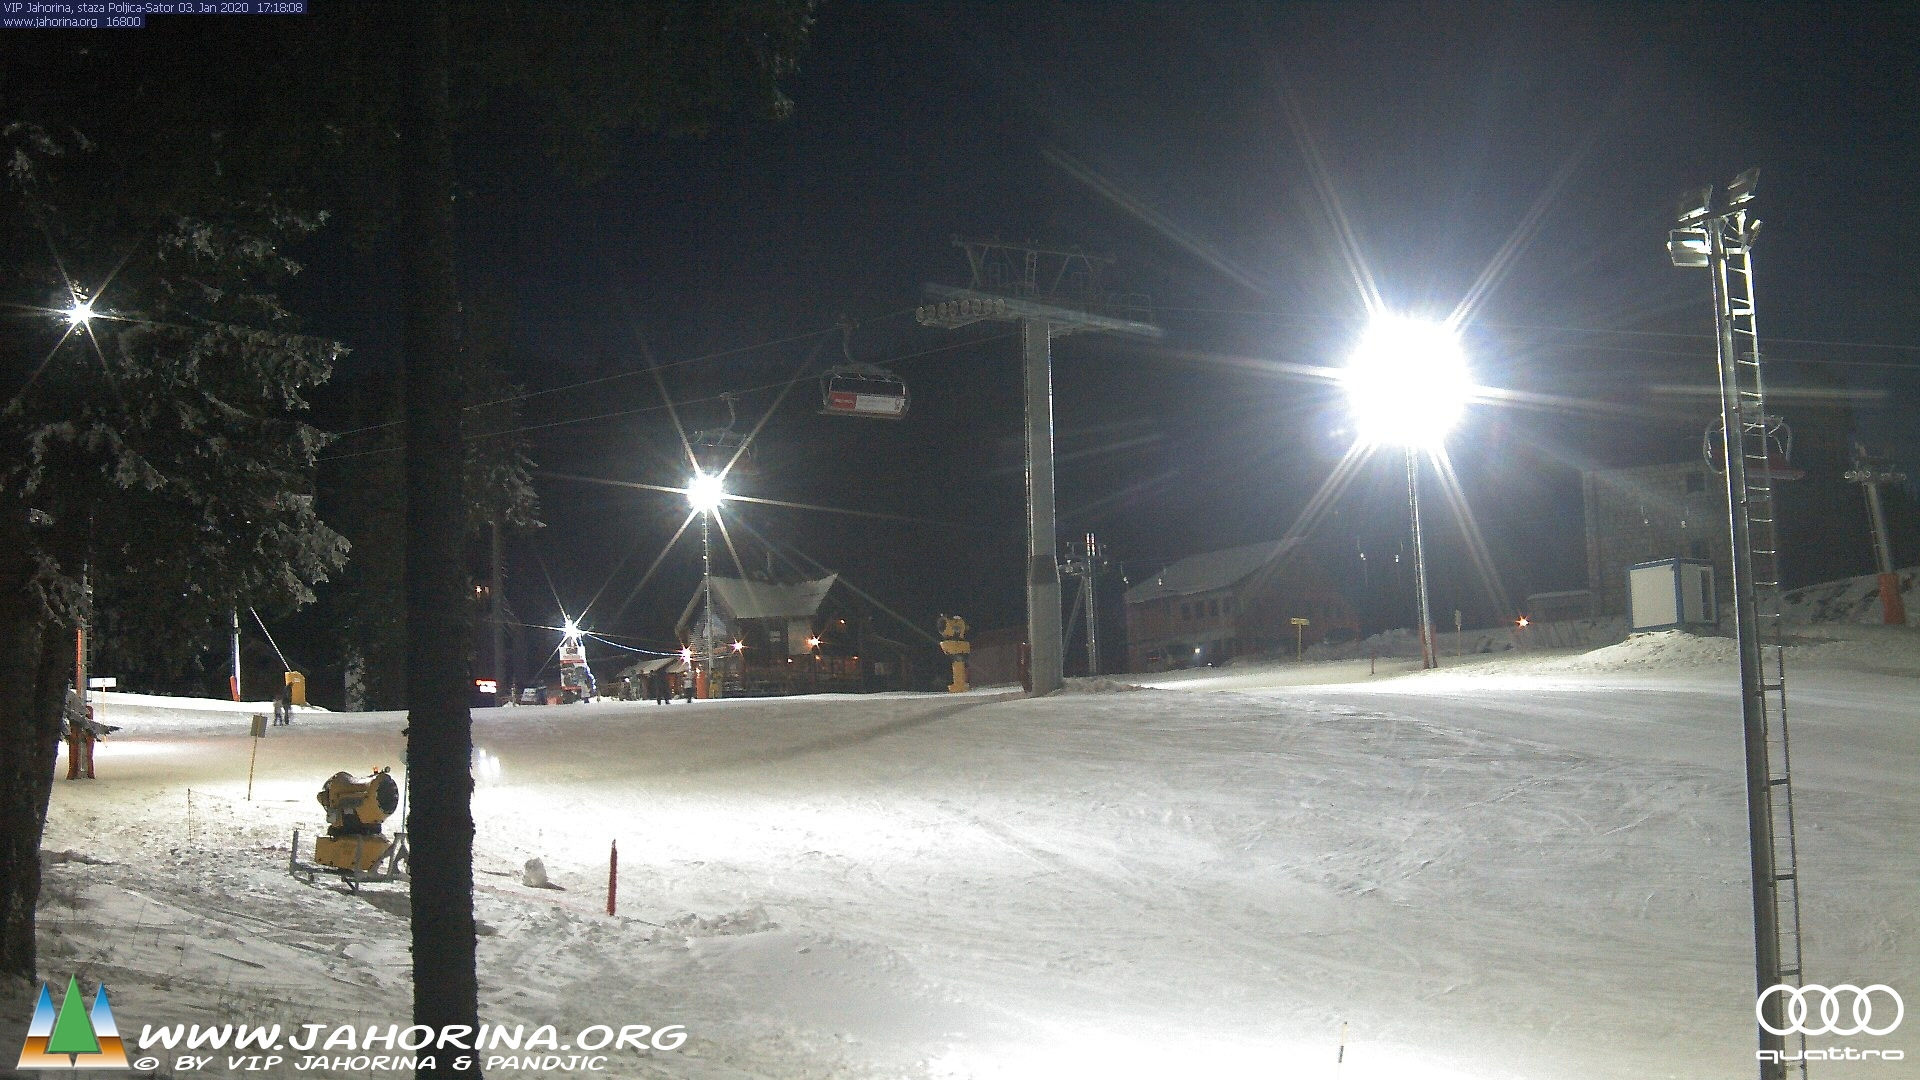 Webcam Jahorina Sator